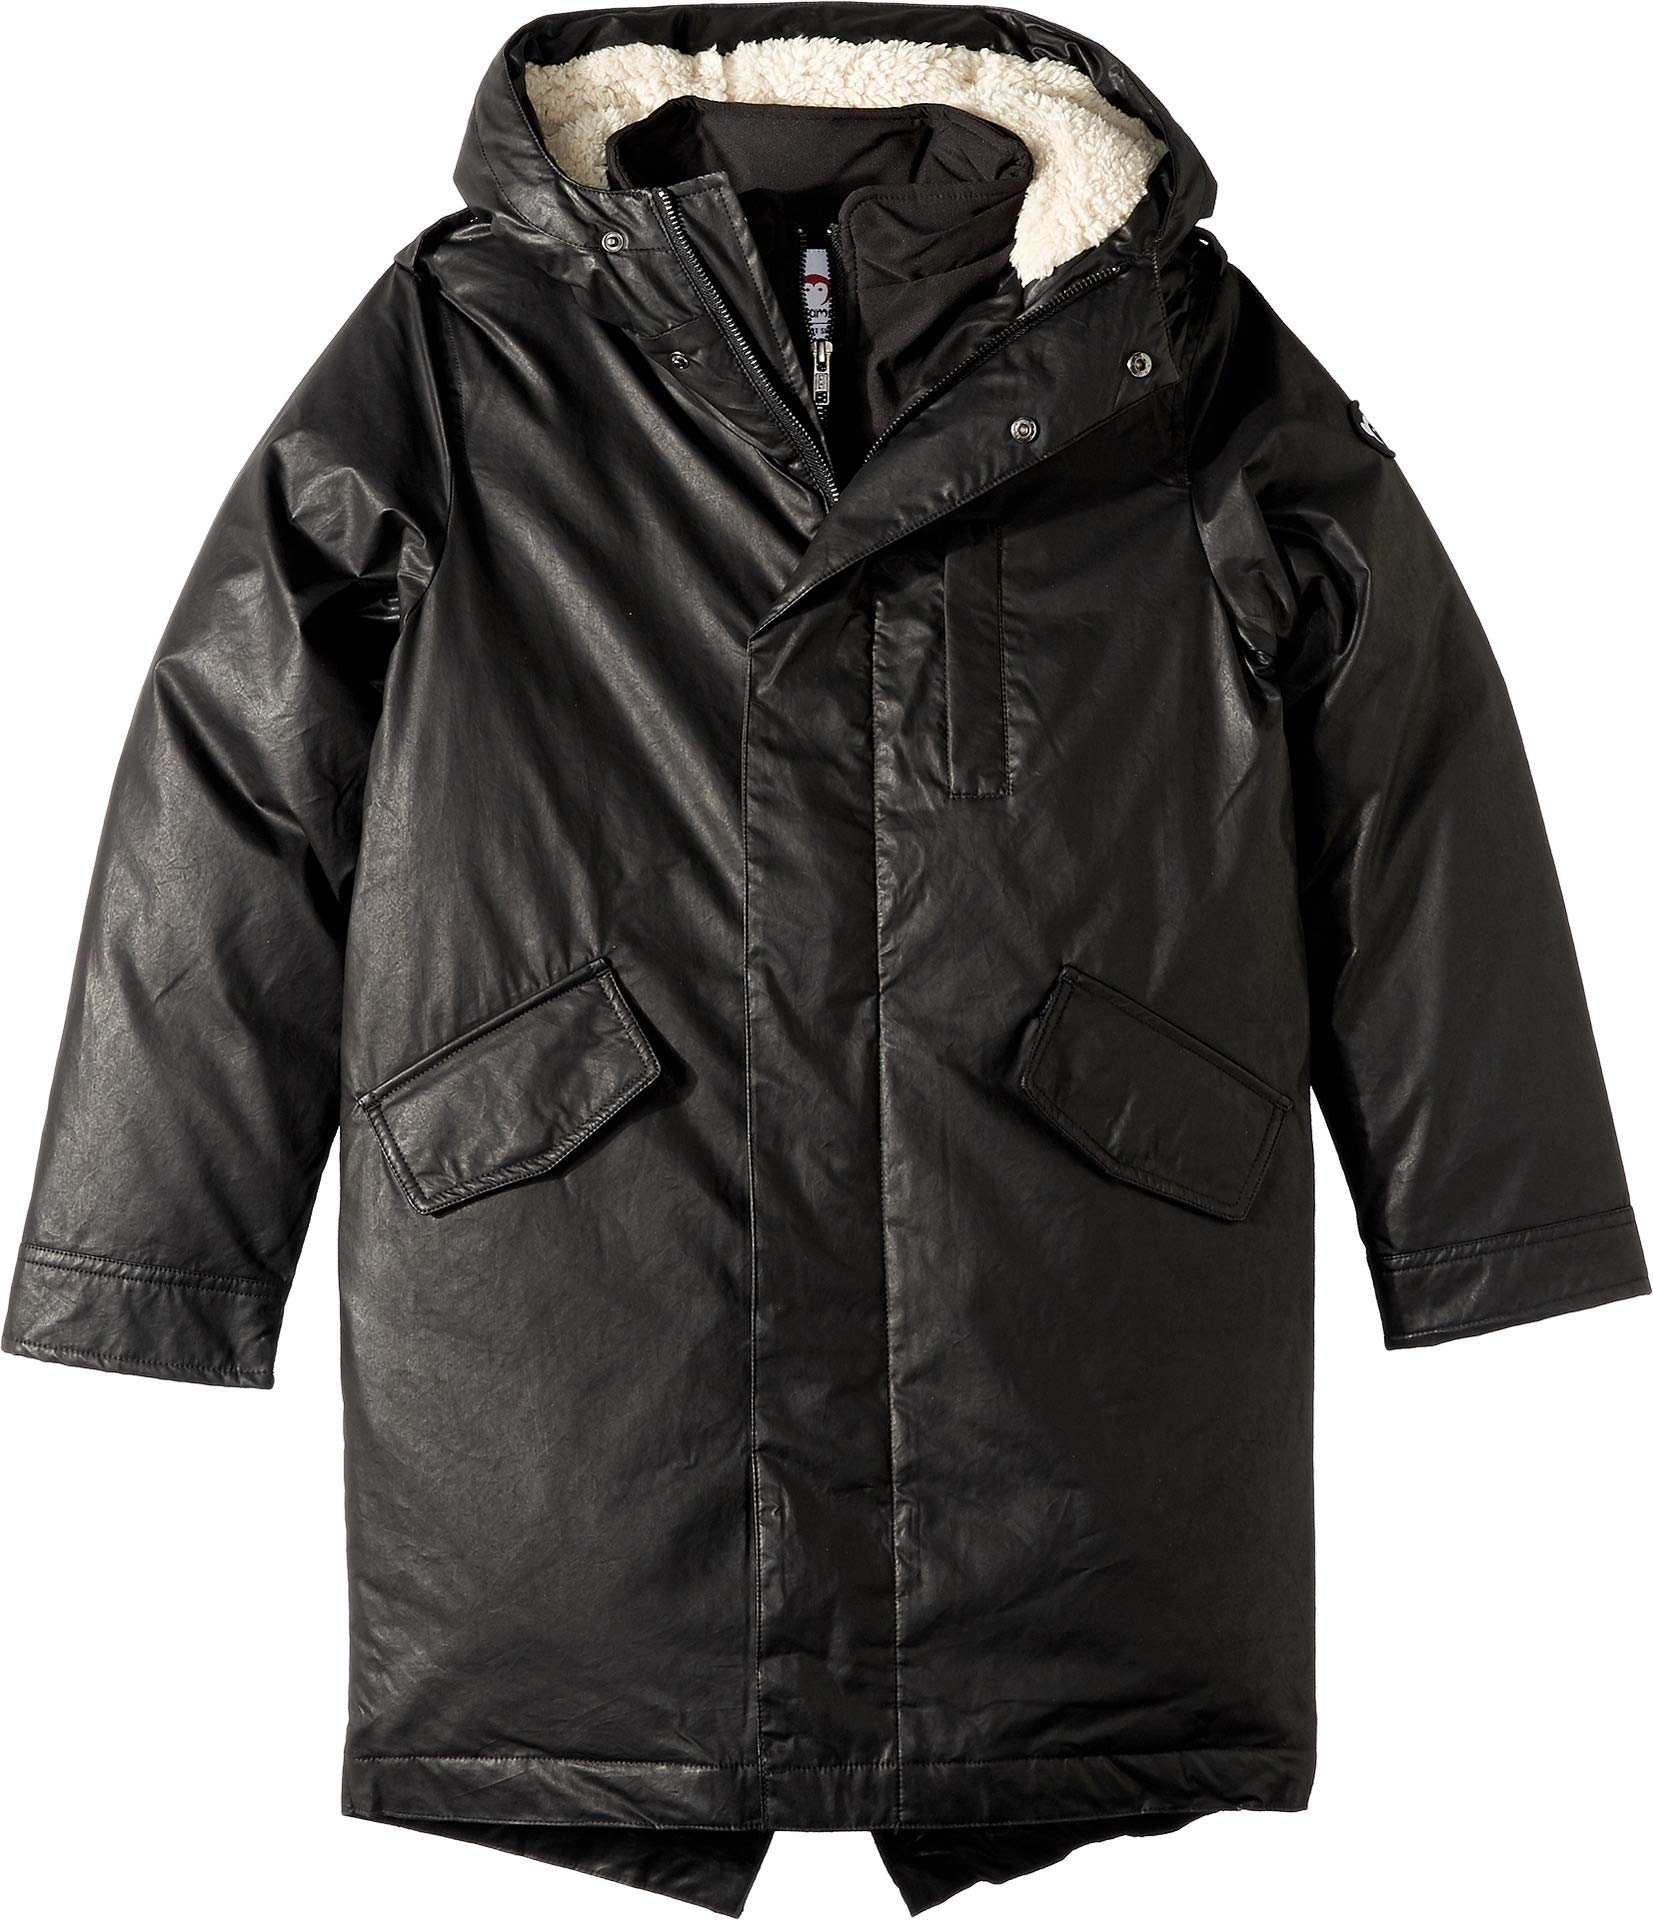 Appaman Kids Baby Boy's Extra Soft Lined Zip and Button Up Himalaya Down Coat with Hood (Toddler/Little Kids/Big Kids) Black 6